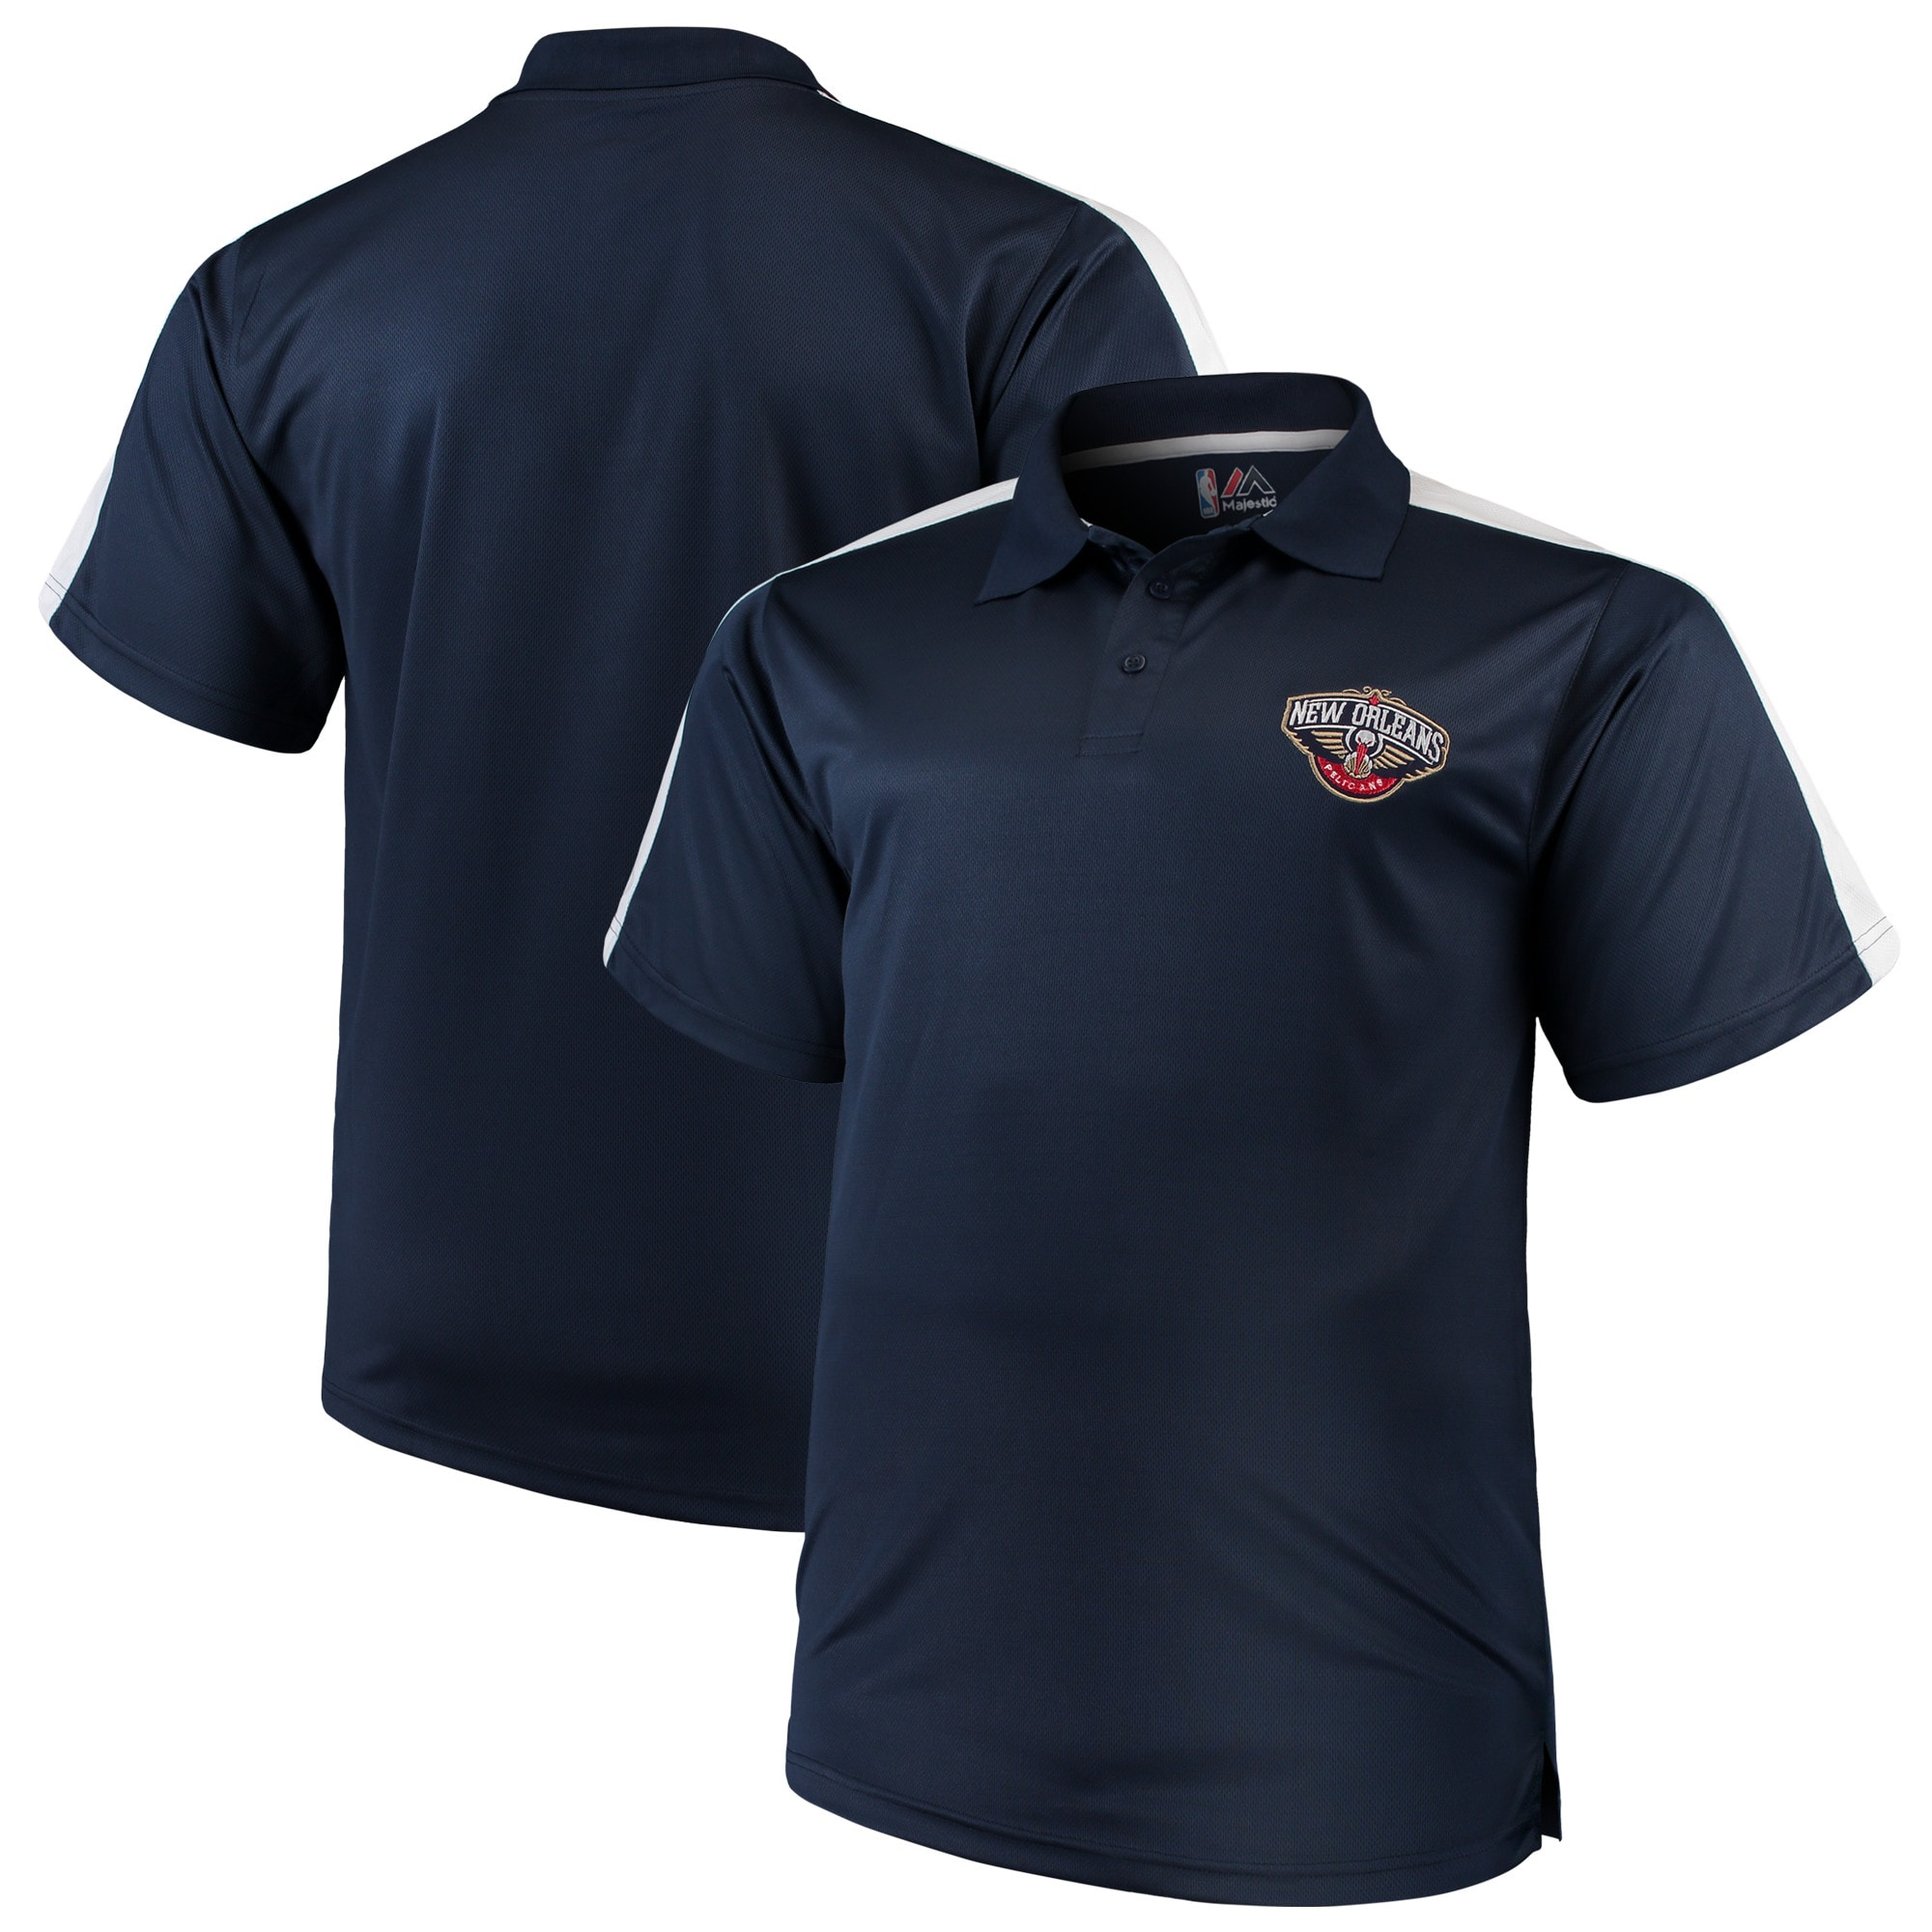 New Orleans Pelicans Majestic Big & Tall Birdseye Polo - Navy/White